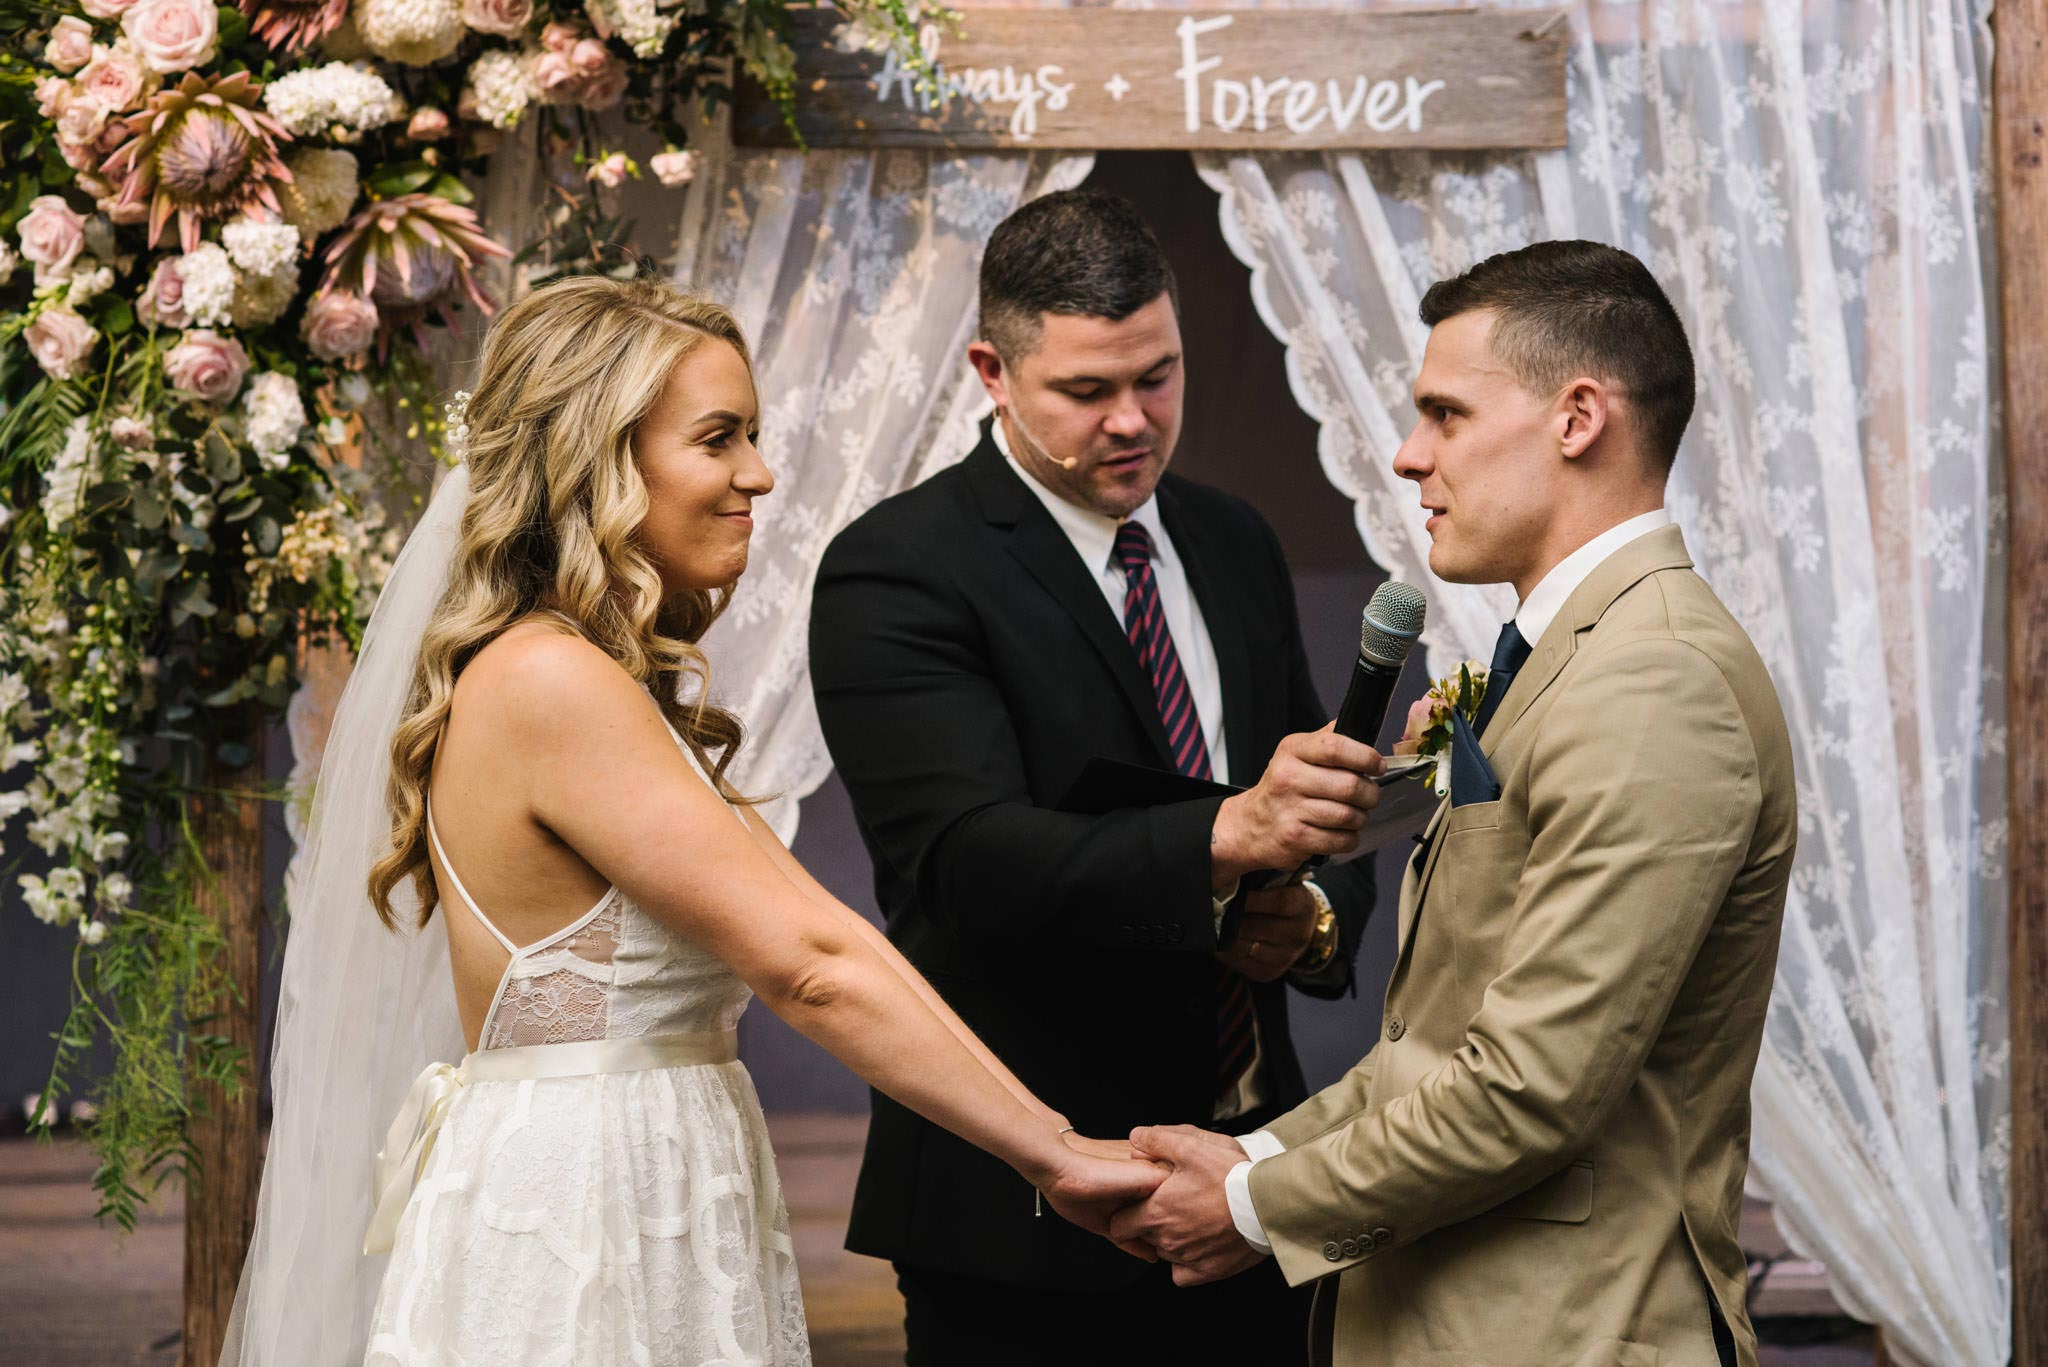 Bride and groom exchange vows in front of vintage lace altar